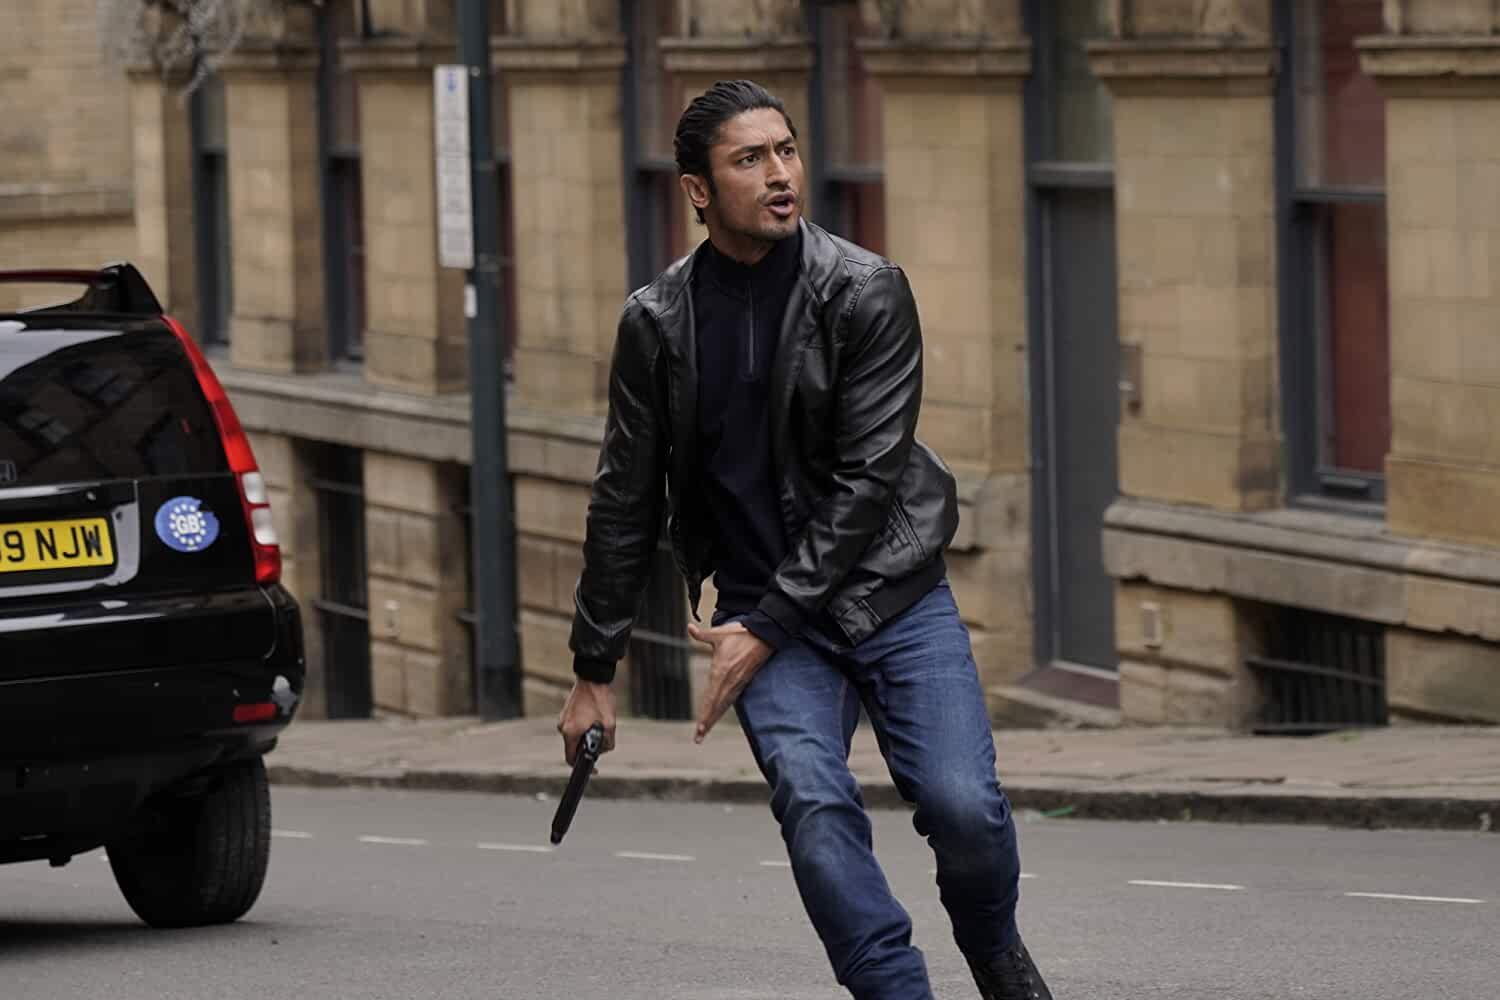 Download Commando 3 (2019) Hindi Movie Bluray